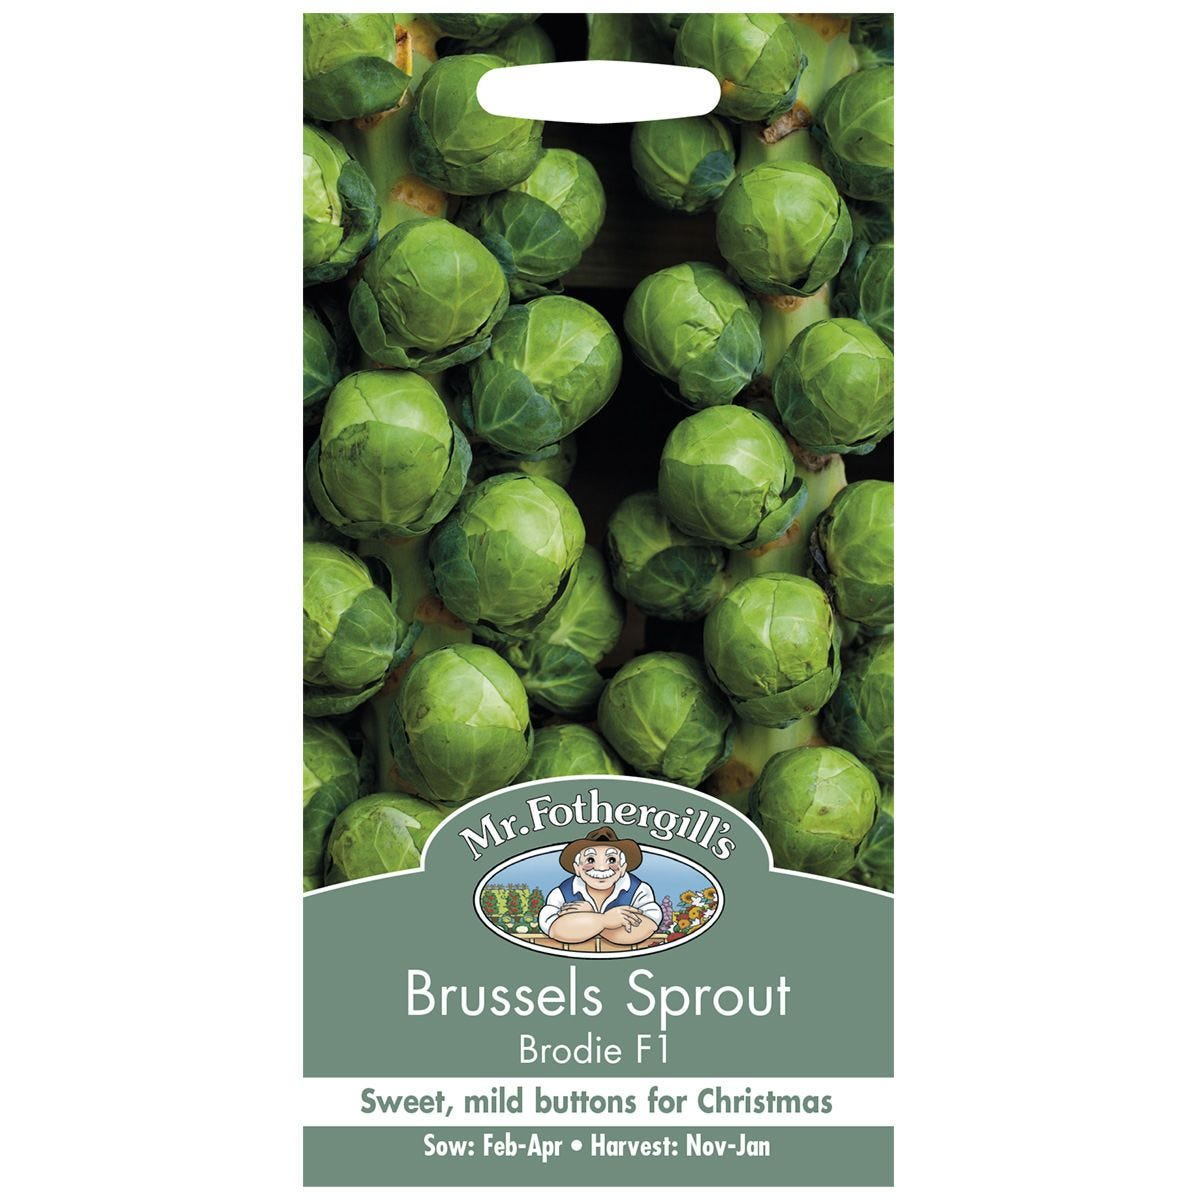 Mr Fothergill's Brussels Sprout Brodie F1 Seeds